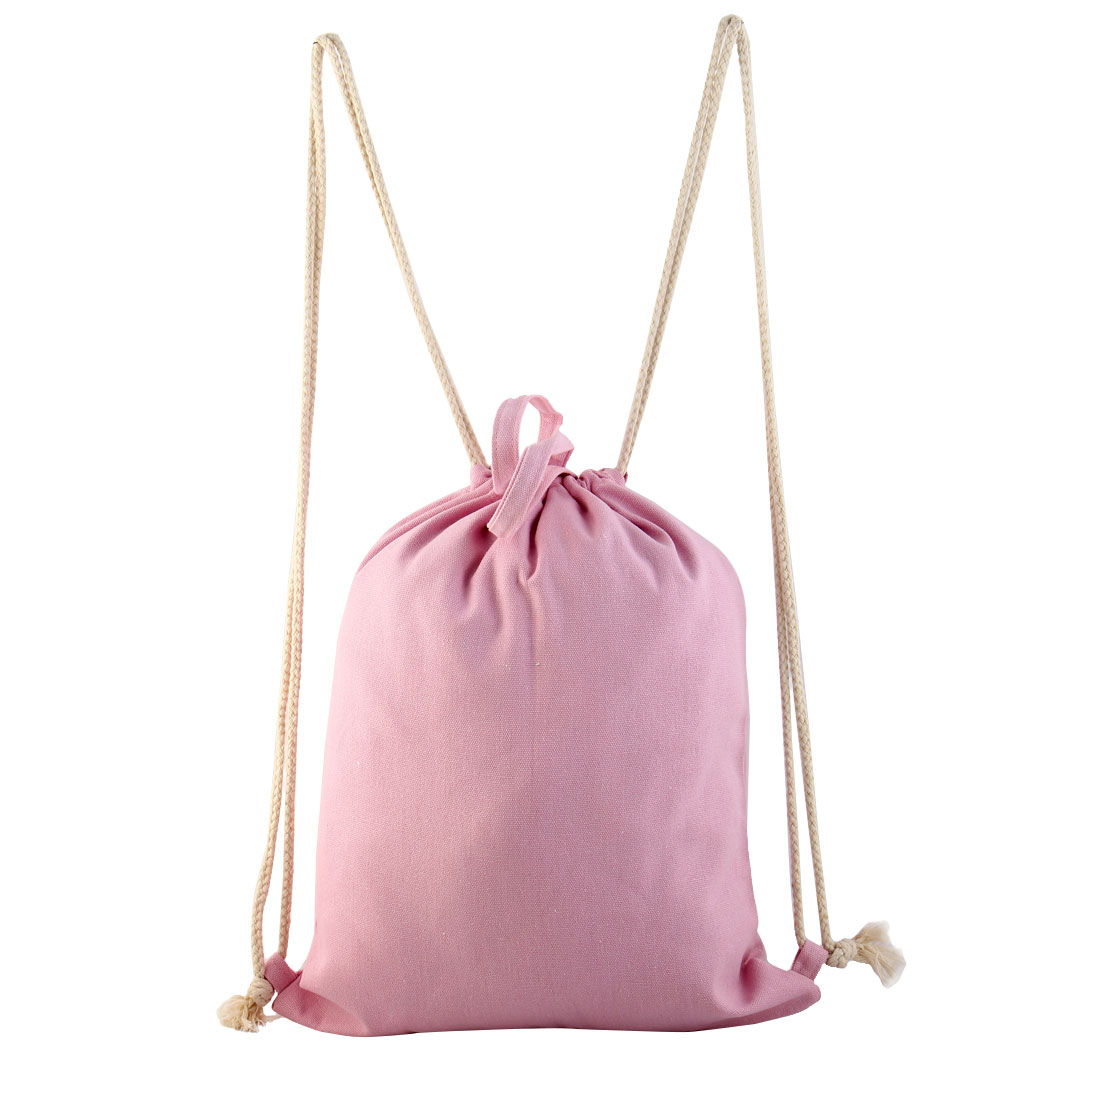 Travel Pouch Sport Pack Double Use Tote Bag Drawstring Backpack Pink